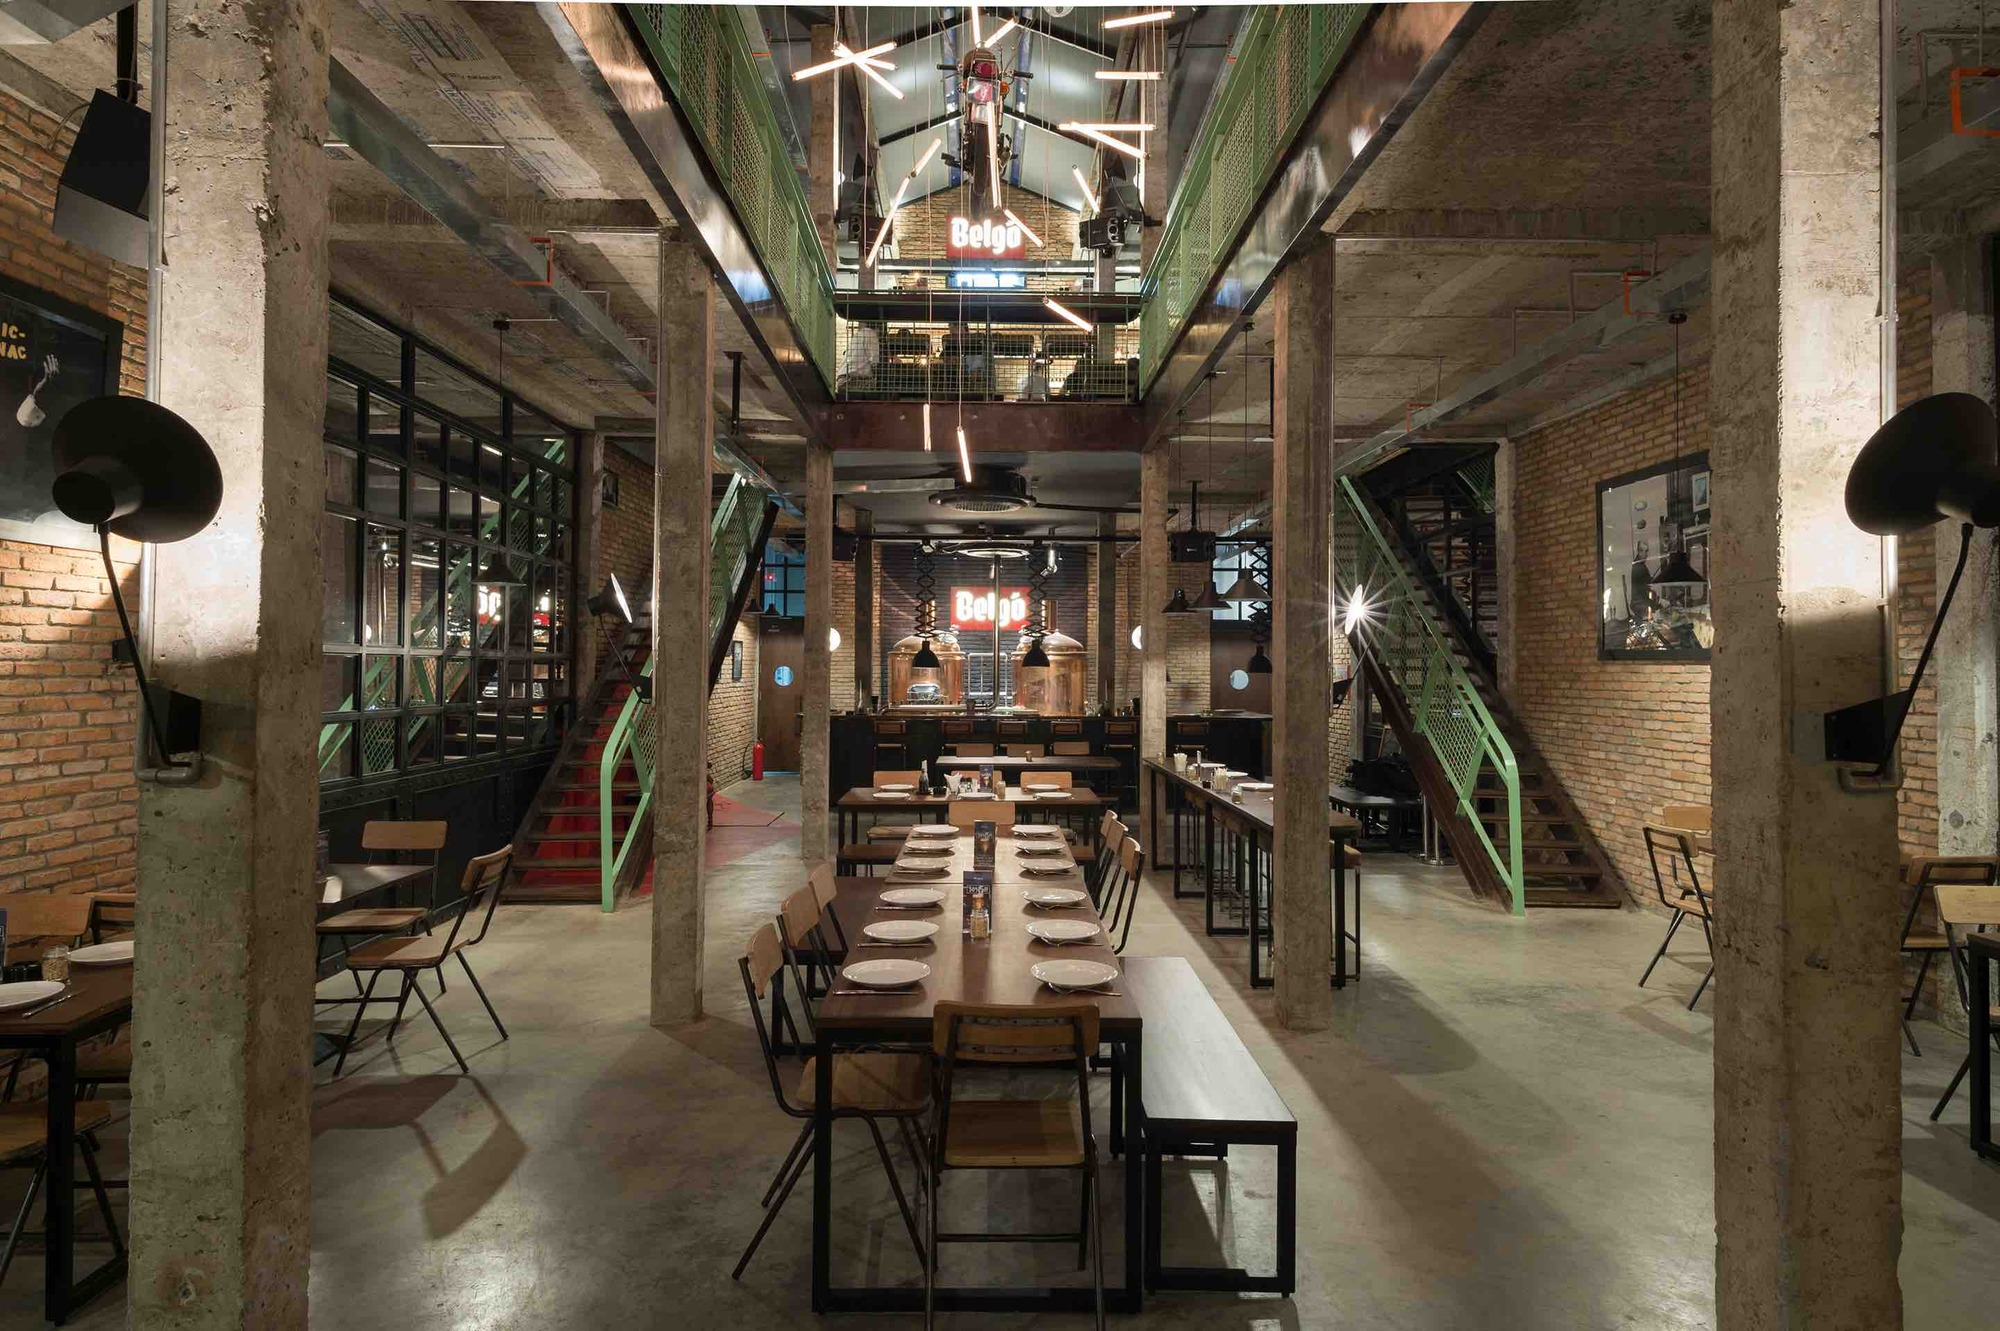 Industrial brewery pub in saigon t3 architecture asia for Brewery design software